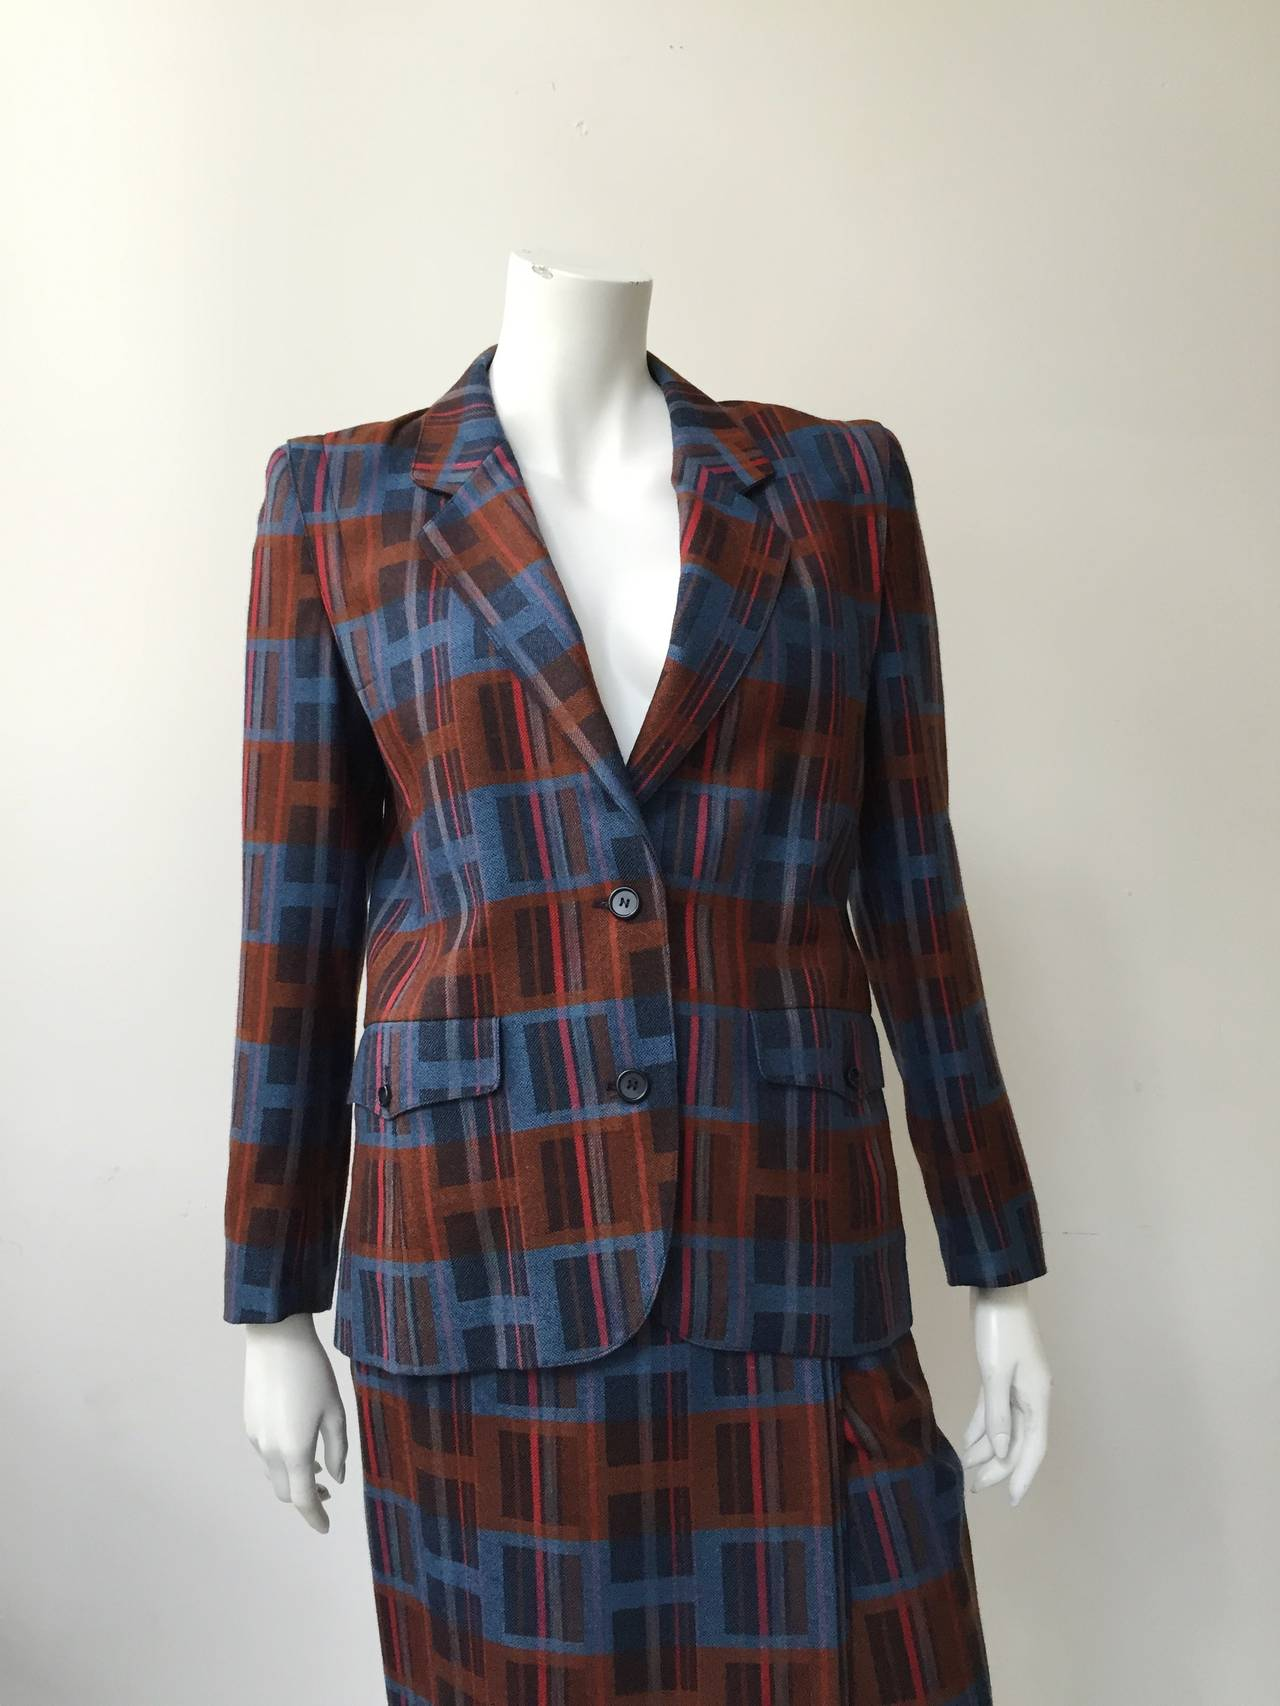 Ted Lapidus 70s ultra modern print wool jacket & skirt size 38 made in France. This fit like a modern size 6 so please see & use measurements.